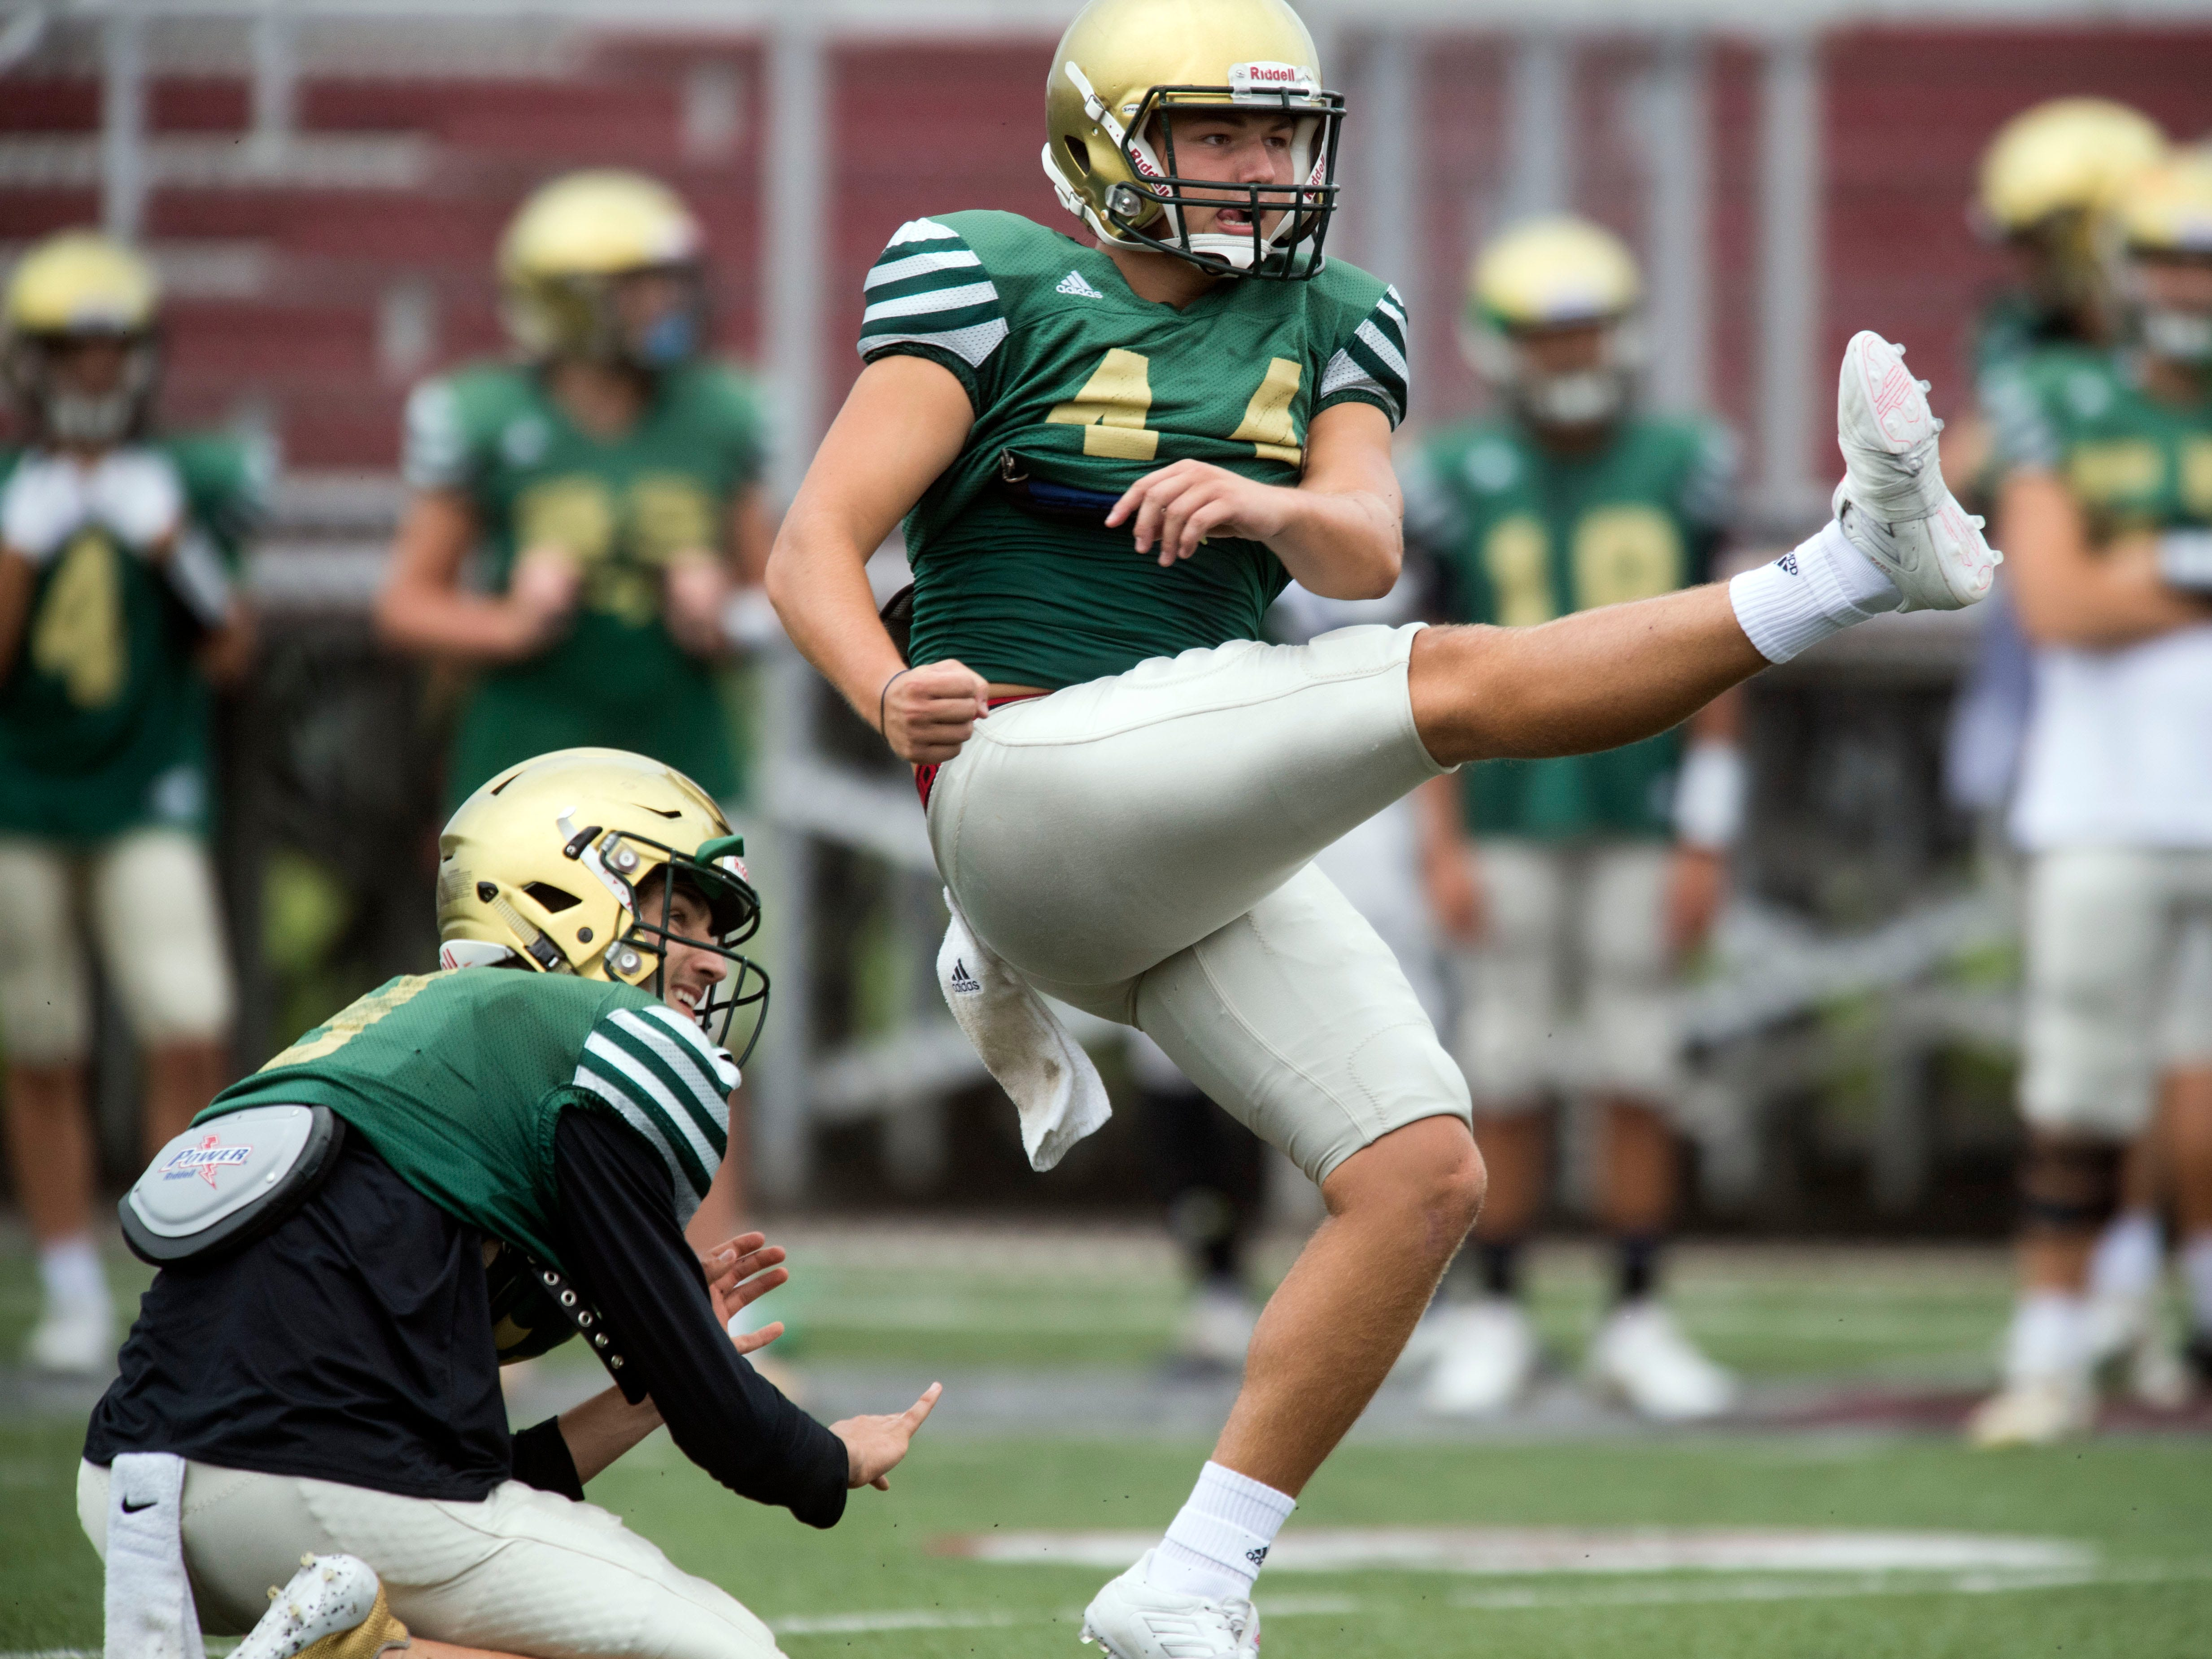 Knoxville Catholic's Landon Ray (44) practices field goals with Jack Jancek (3) before the start of a football scrimmage against Alcoa on Tuesday, July 31, 2018.